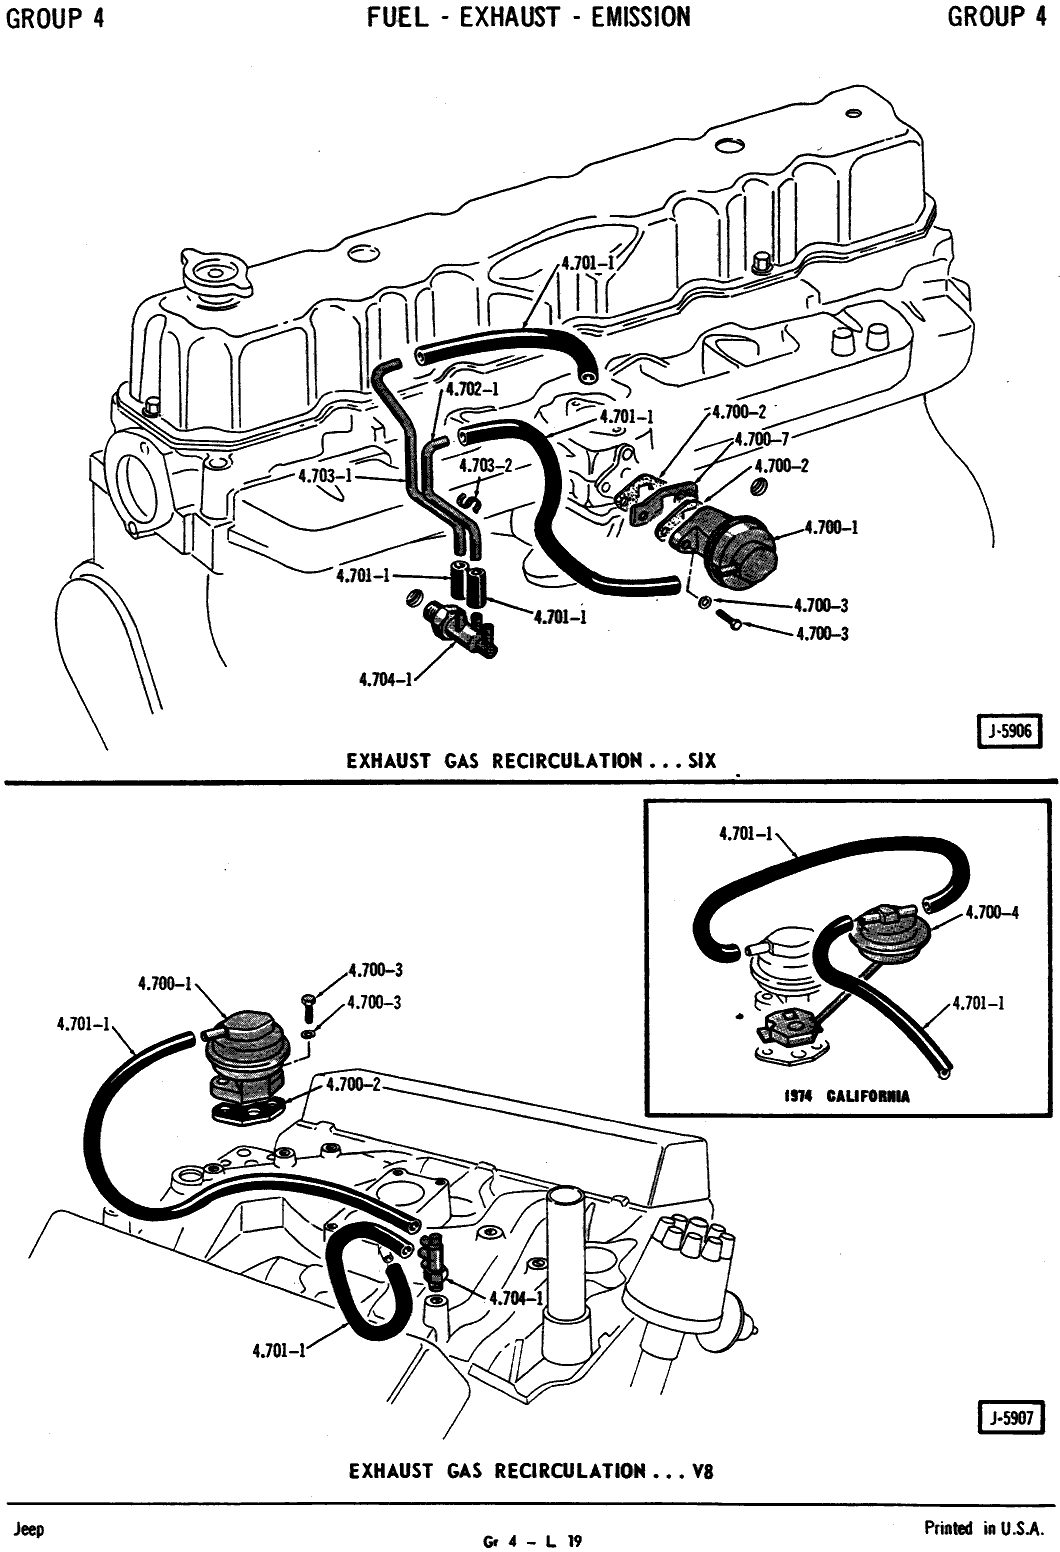 Jeep Wrangler Vacuum Hose Diagram